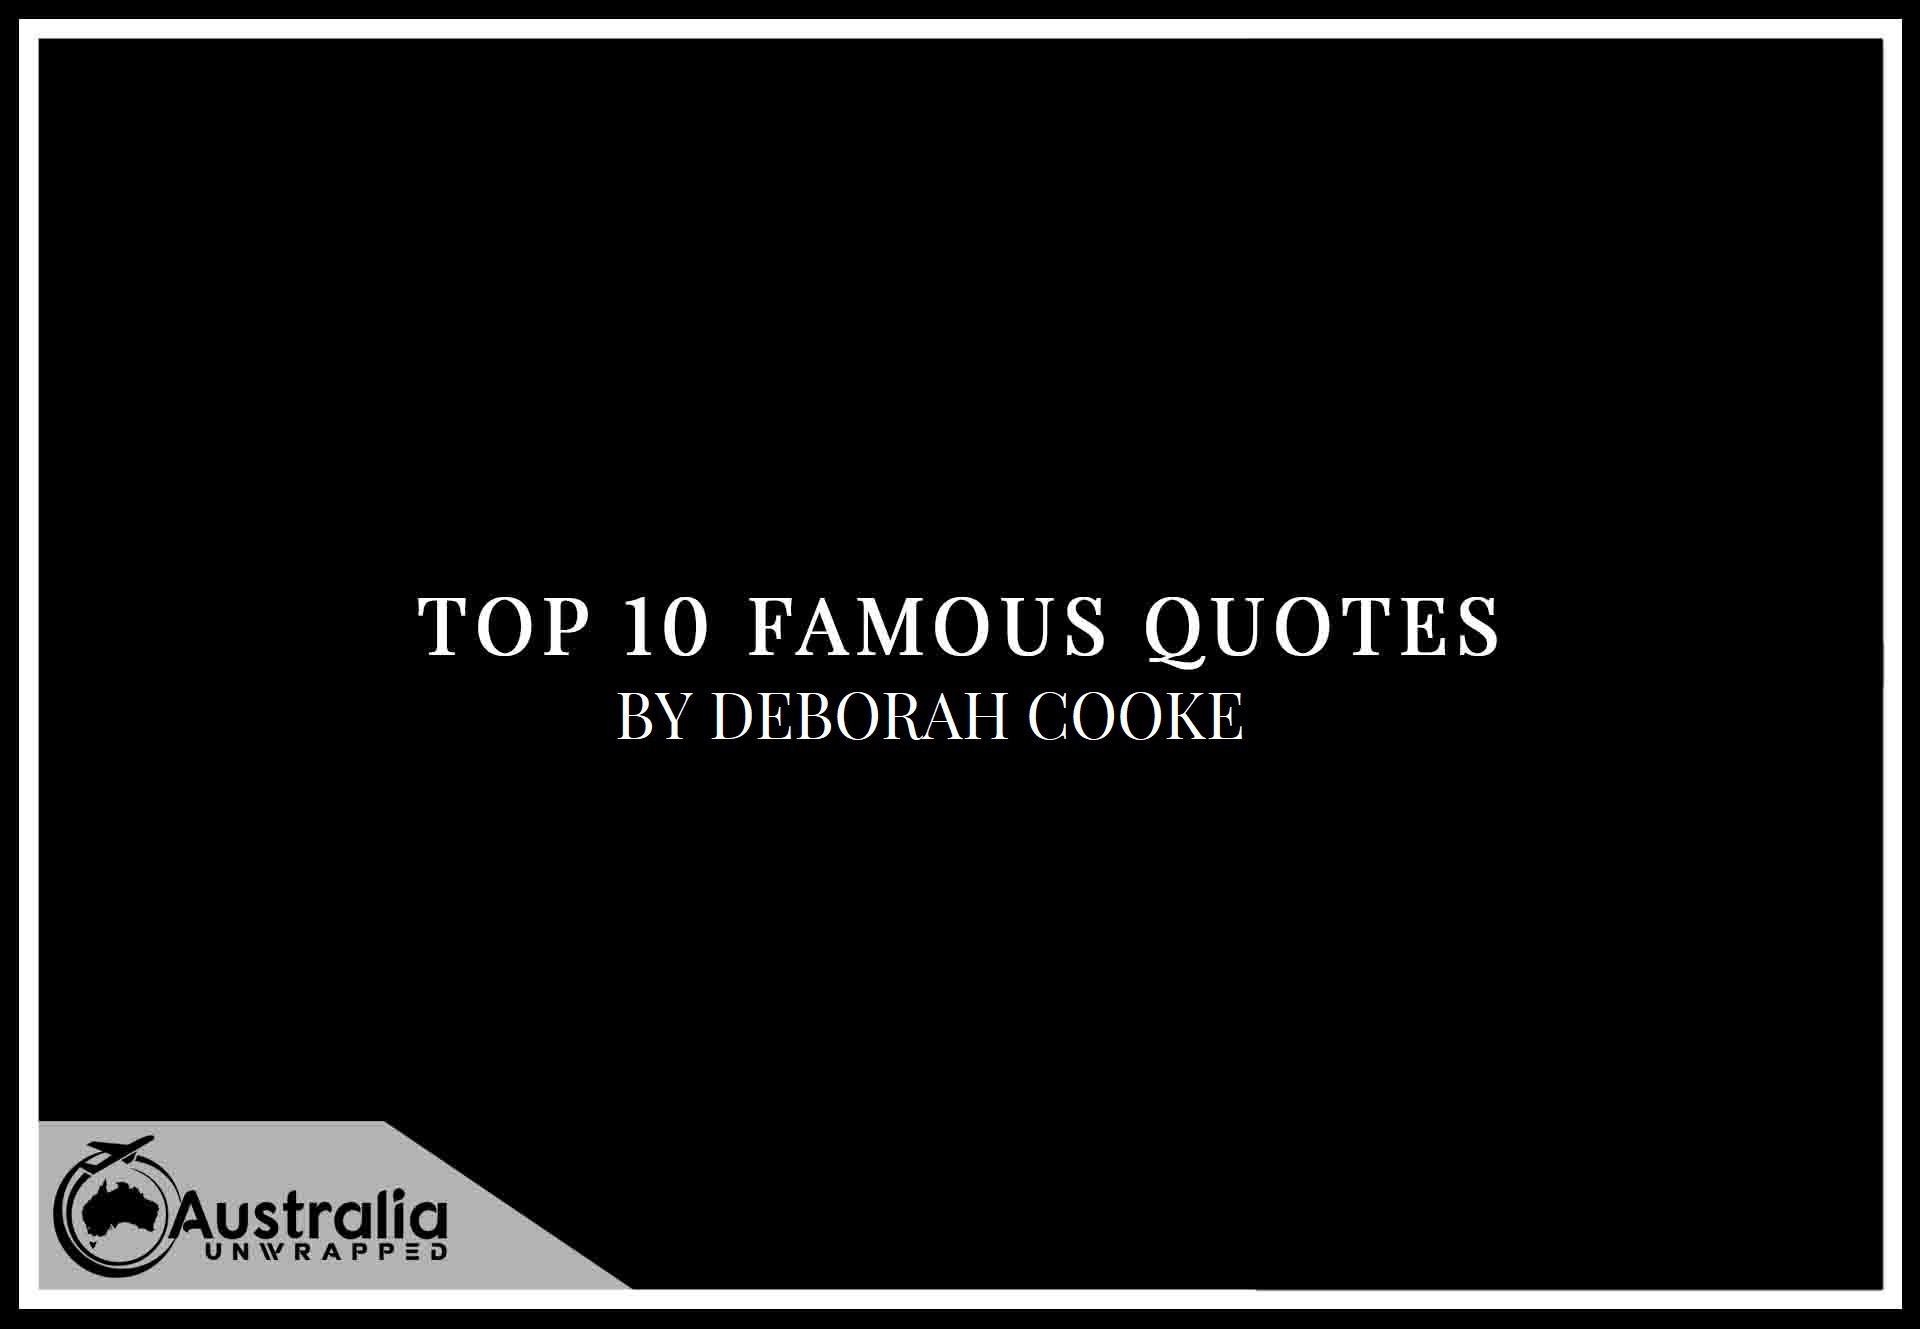 Deborah Cooke's Top 10 Popular and Famous Quotes